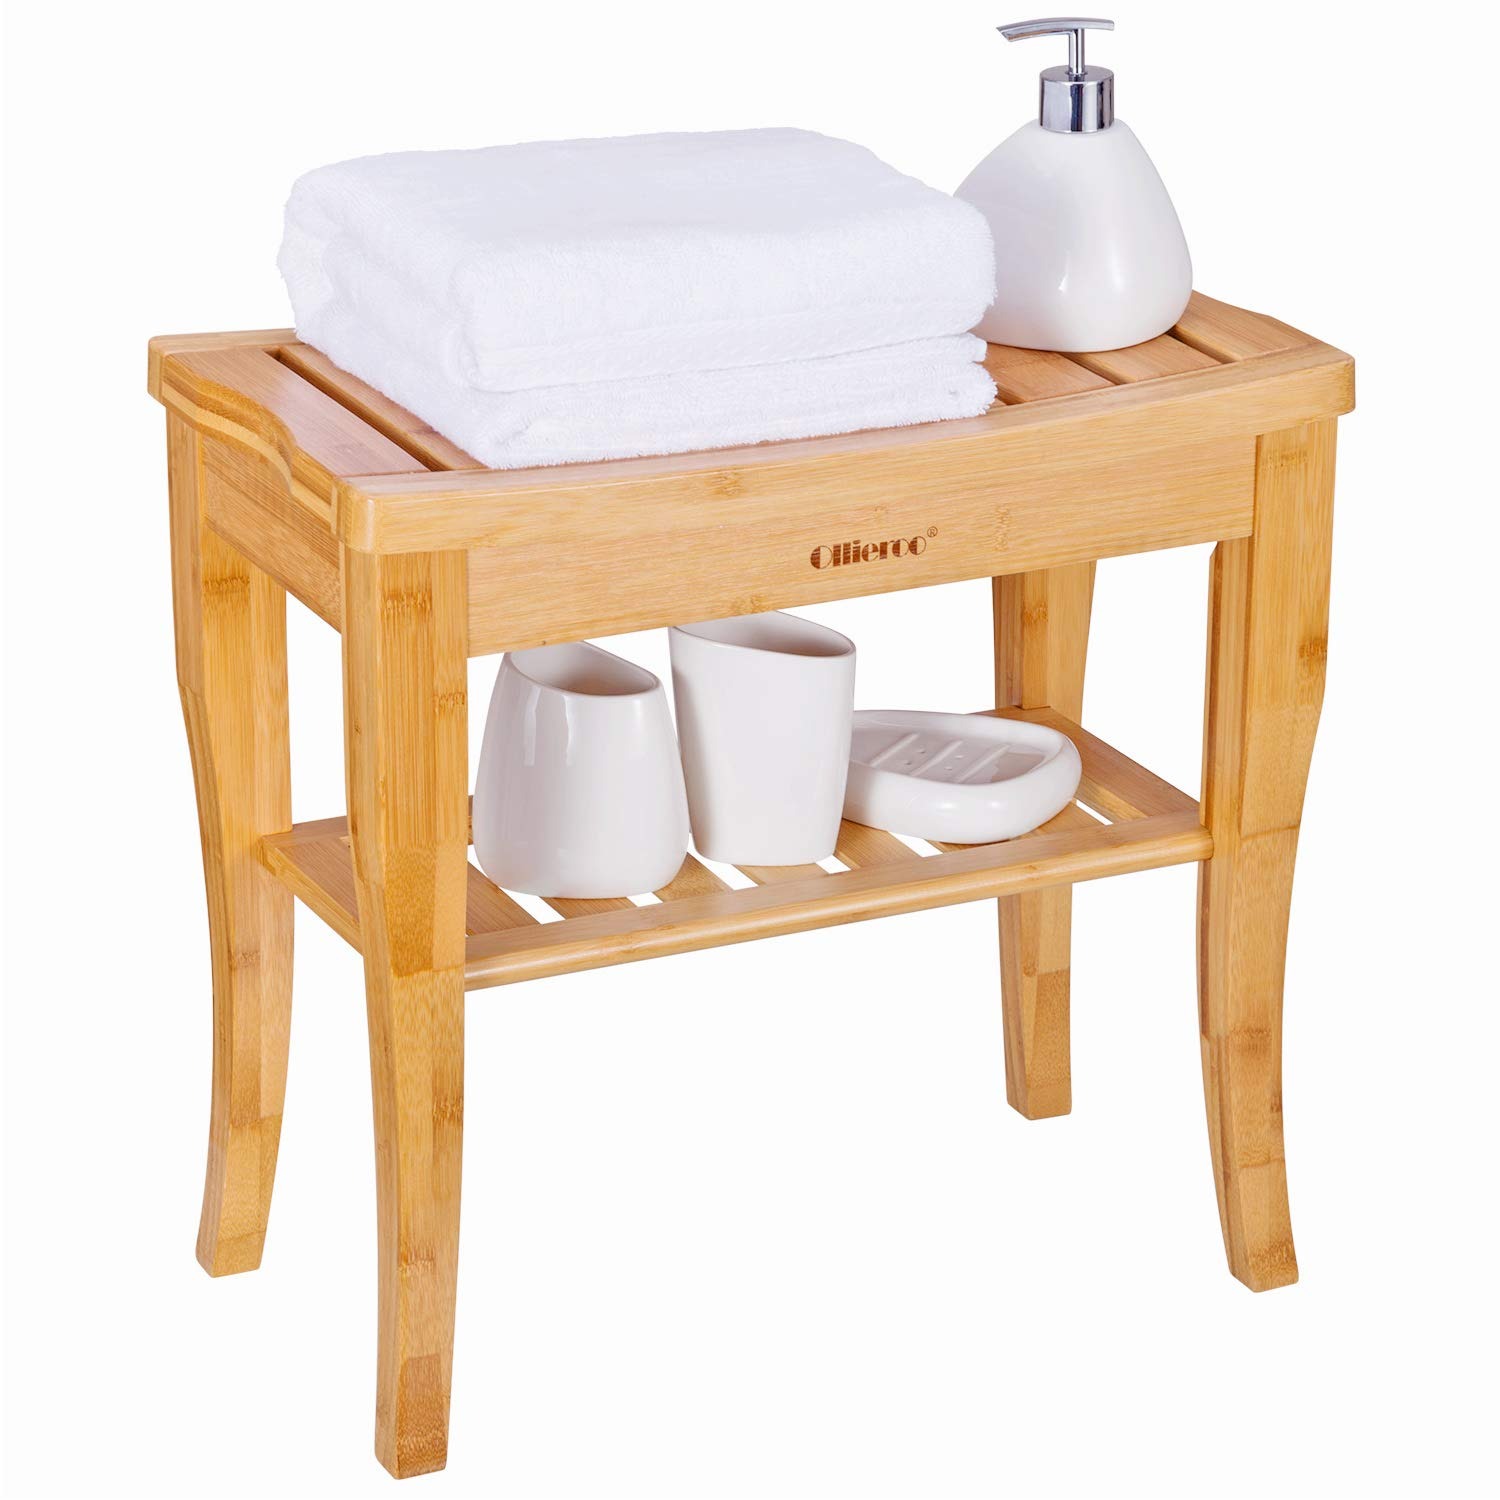 Wondrous Details About Ollieroo Bamboo Shower Bench Seat Wooden Spa Bench Stool With Storage Shelf Theyellowbook Wood Chair Design Ideas Theyellowbookinfo